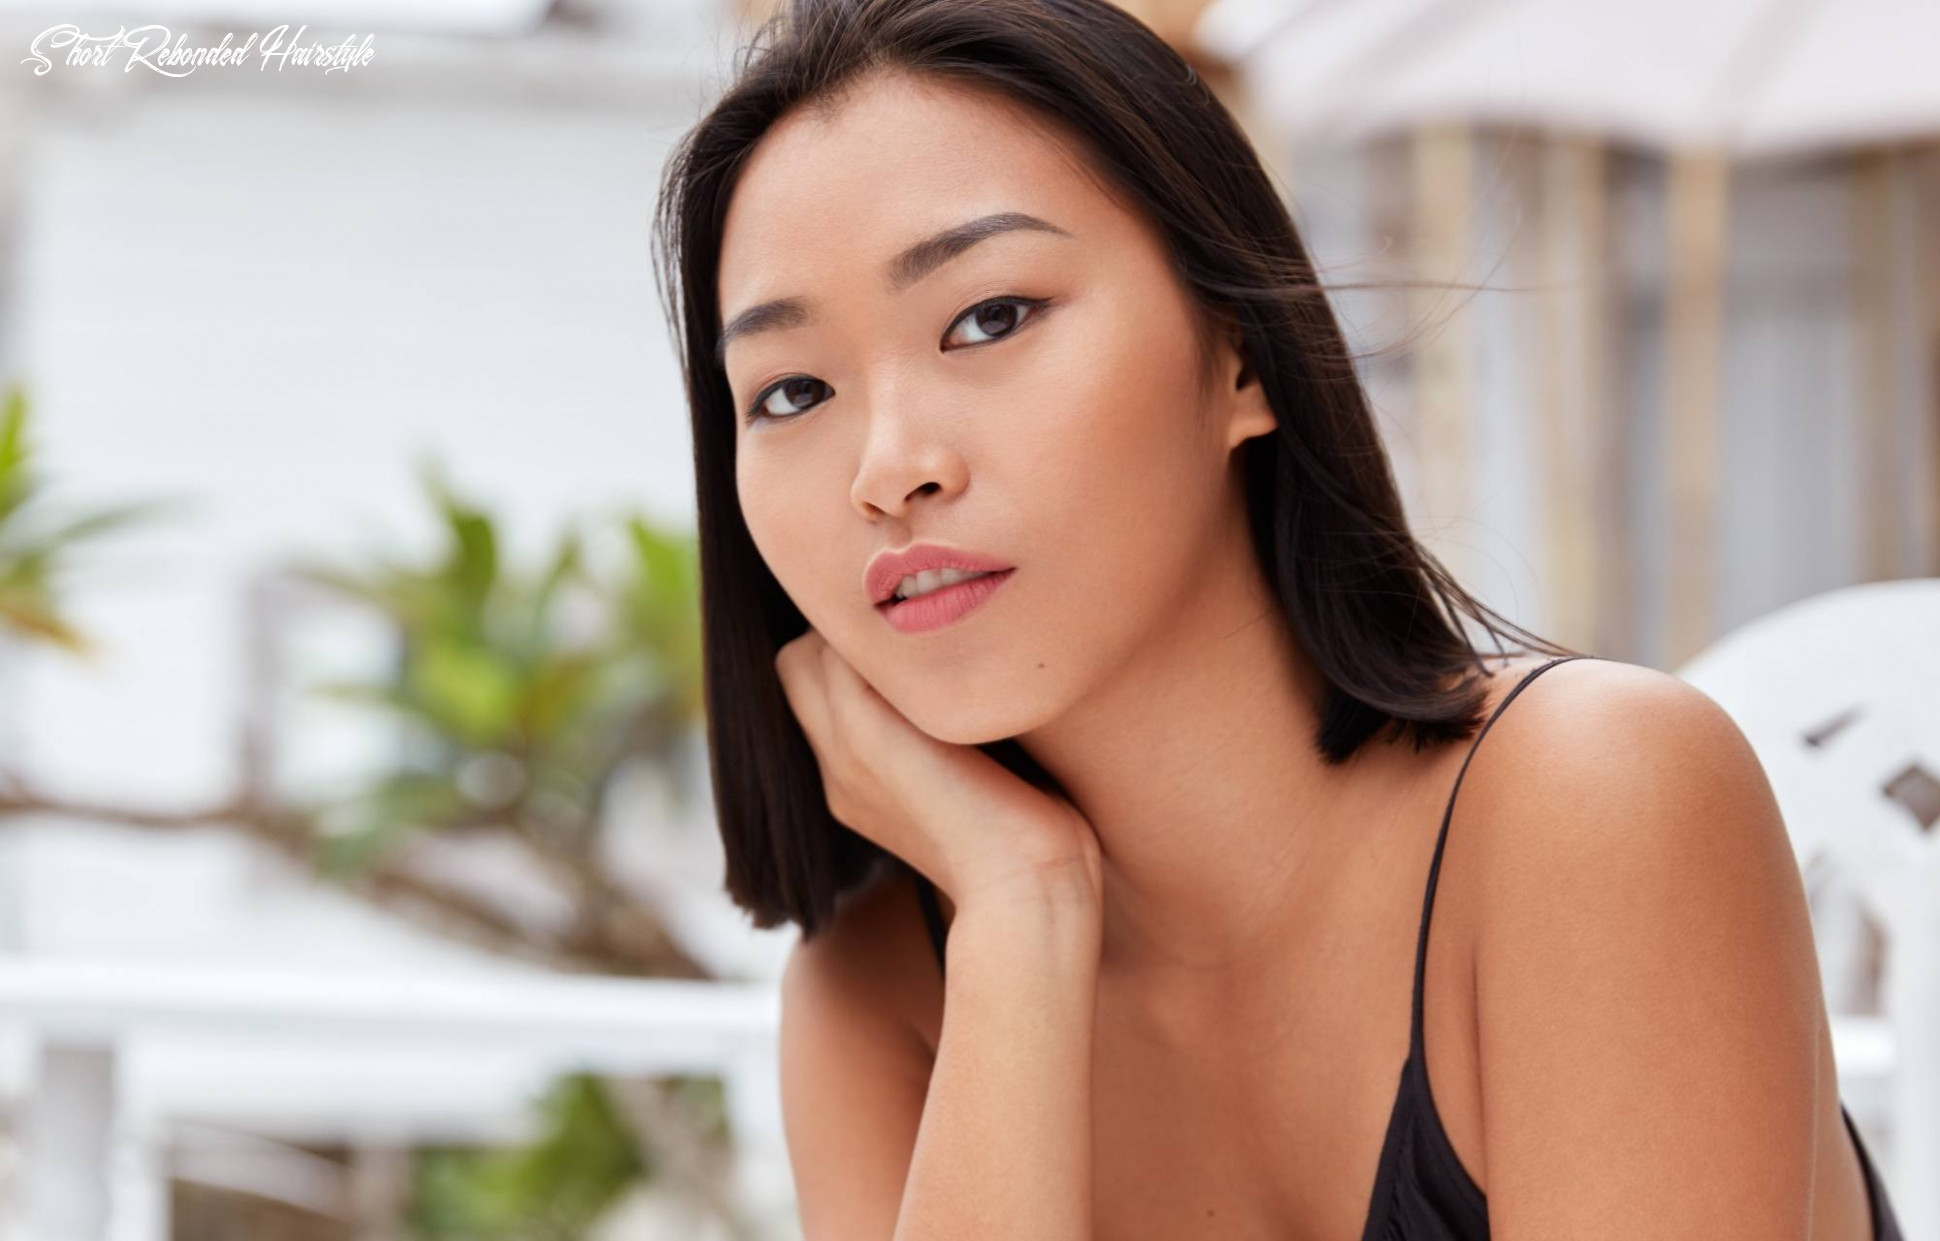 Rebonded short hair: what you need to know before getting one short rebonded hairstyle